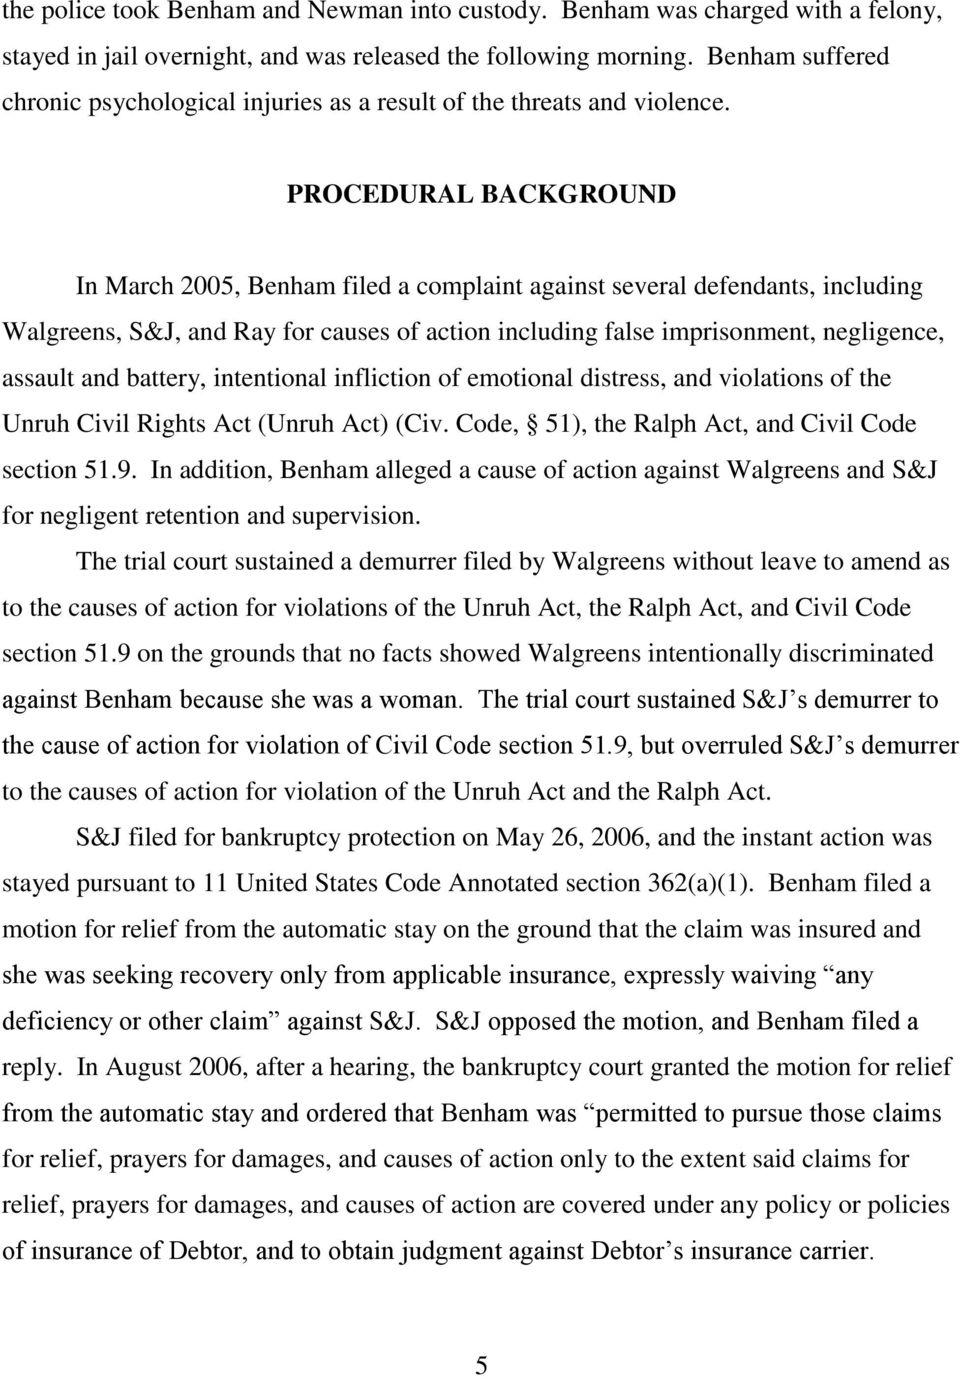 PROCEDURAL BACKGROUND In March 2005, Benham filed a complaint against several defendants, including Walgreens, S&J, and Ray for causes of action including false imprisonment, negligence, assault and